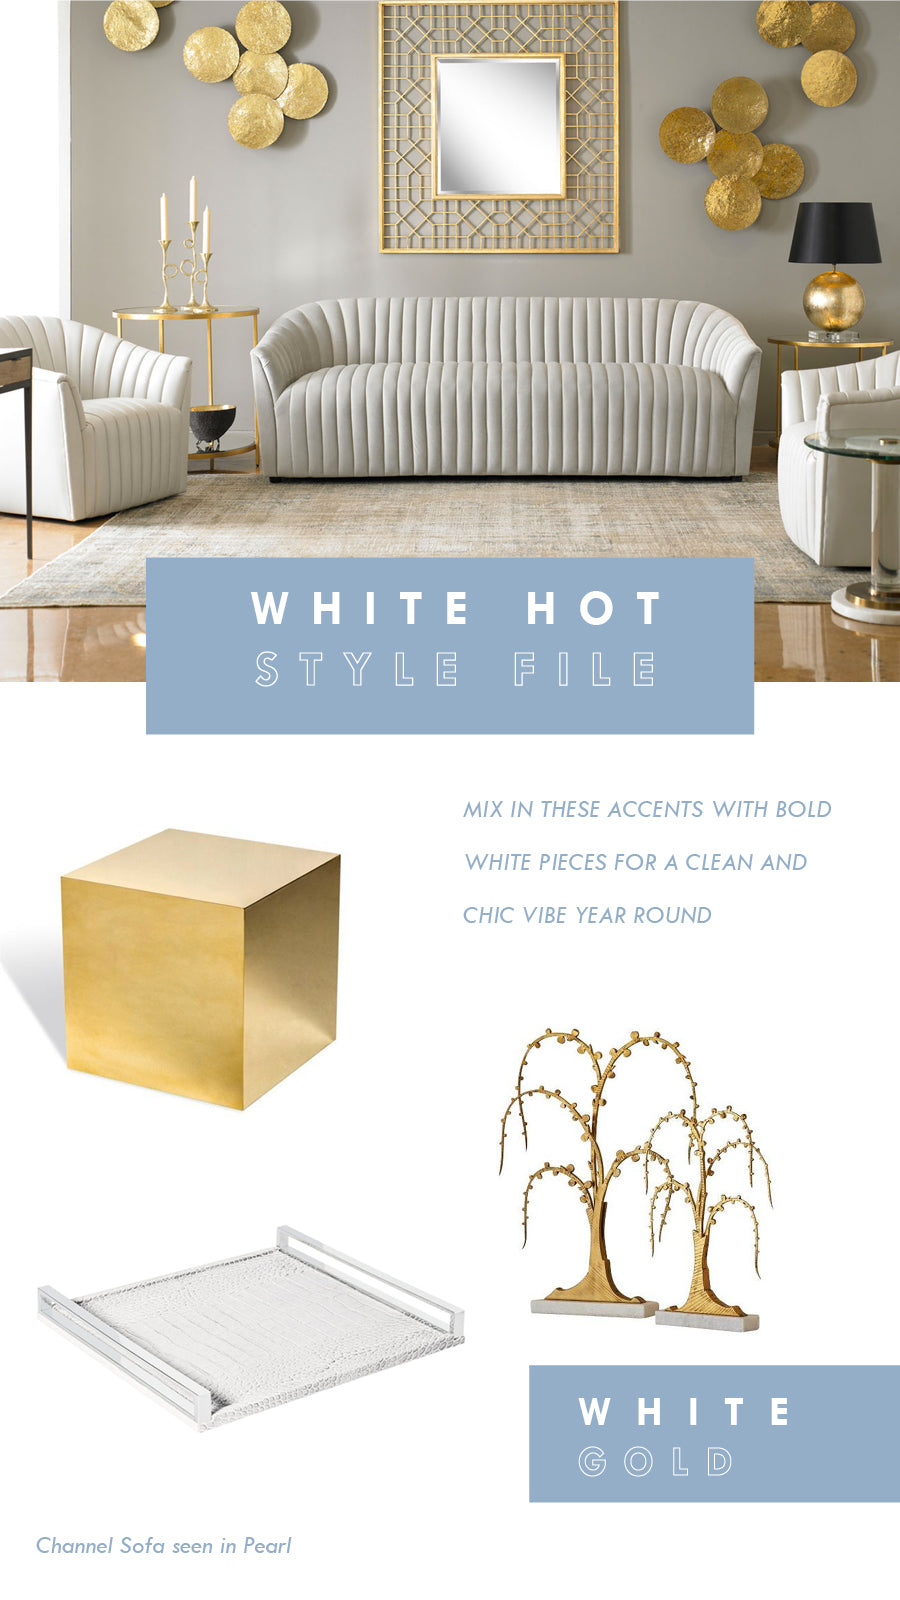 White Hot Furniture Home Decor Decorating Tips